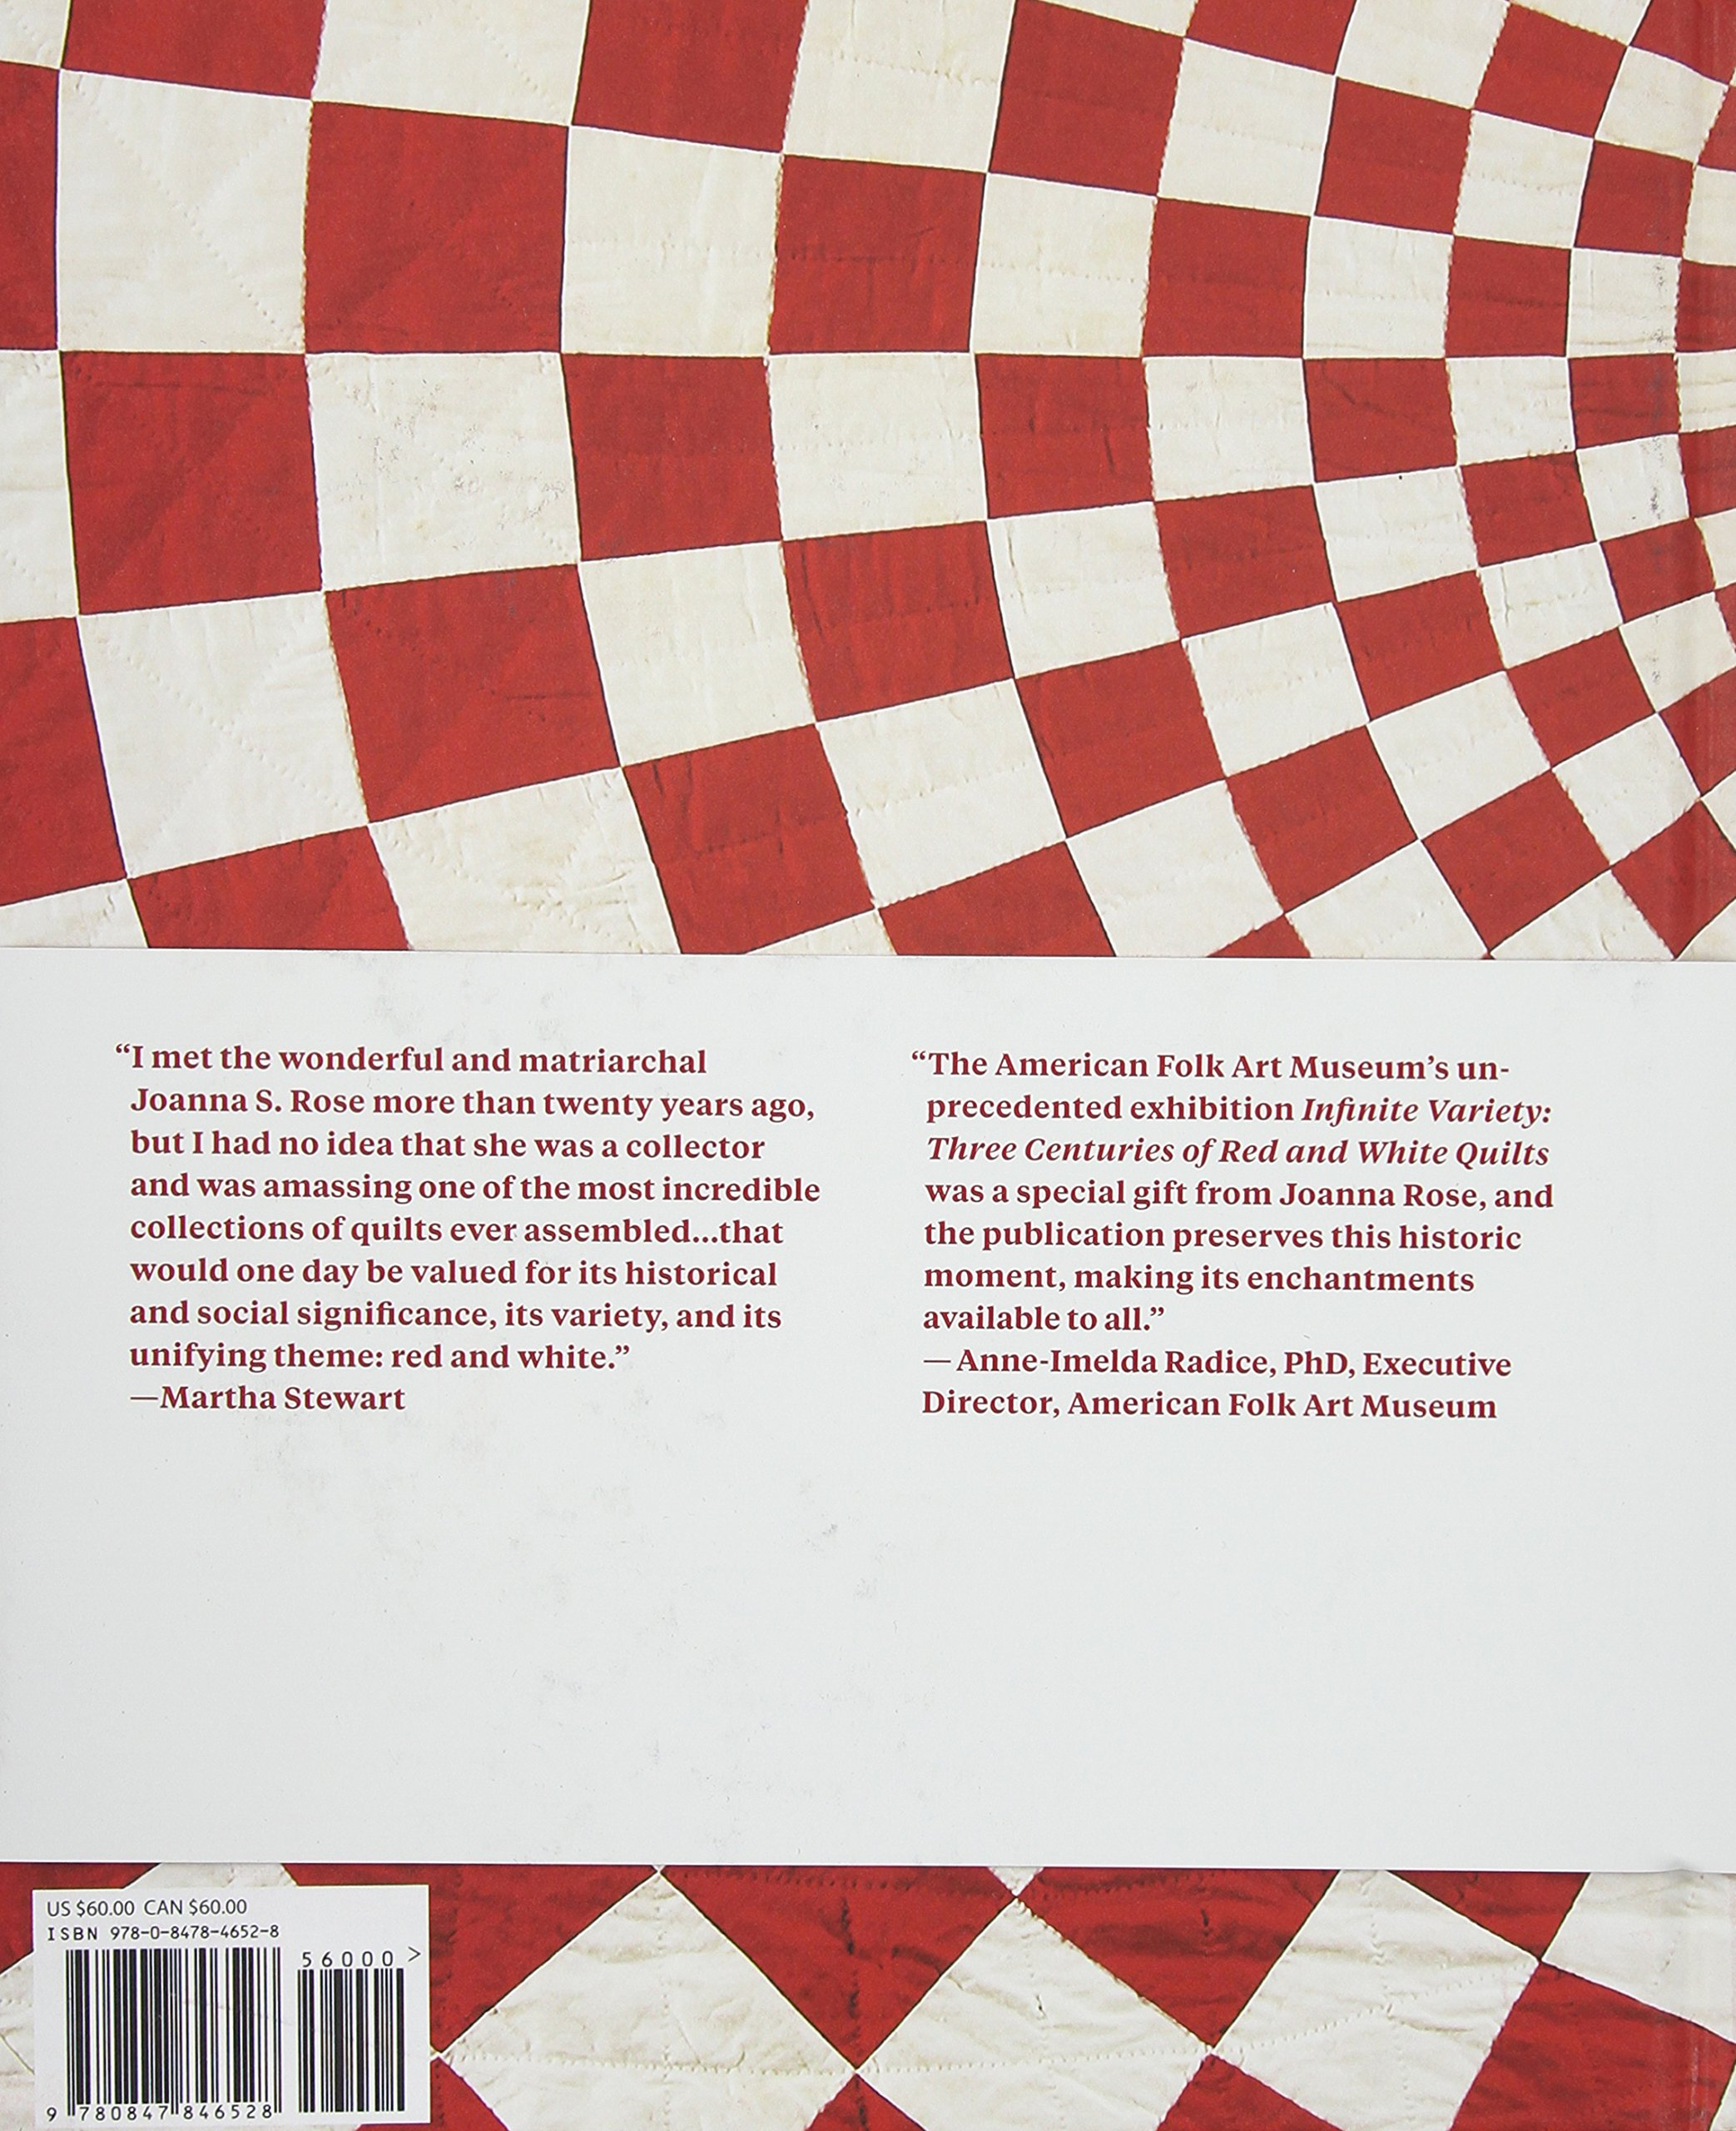 Red and white quilts infinite variety presented by the american red and white quilts infinite variety presented by the american folk art museum elizabeth warren maggi gordon joanna s rose gavin ashworth fandeluxe Document